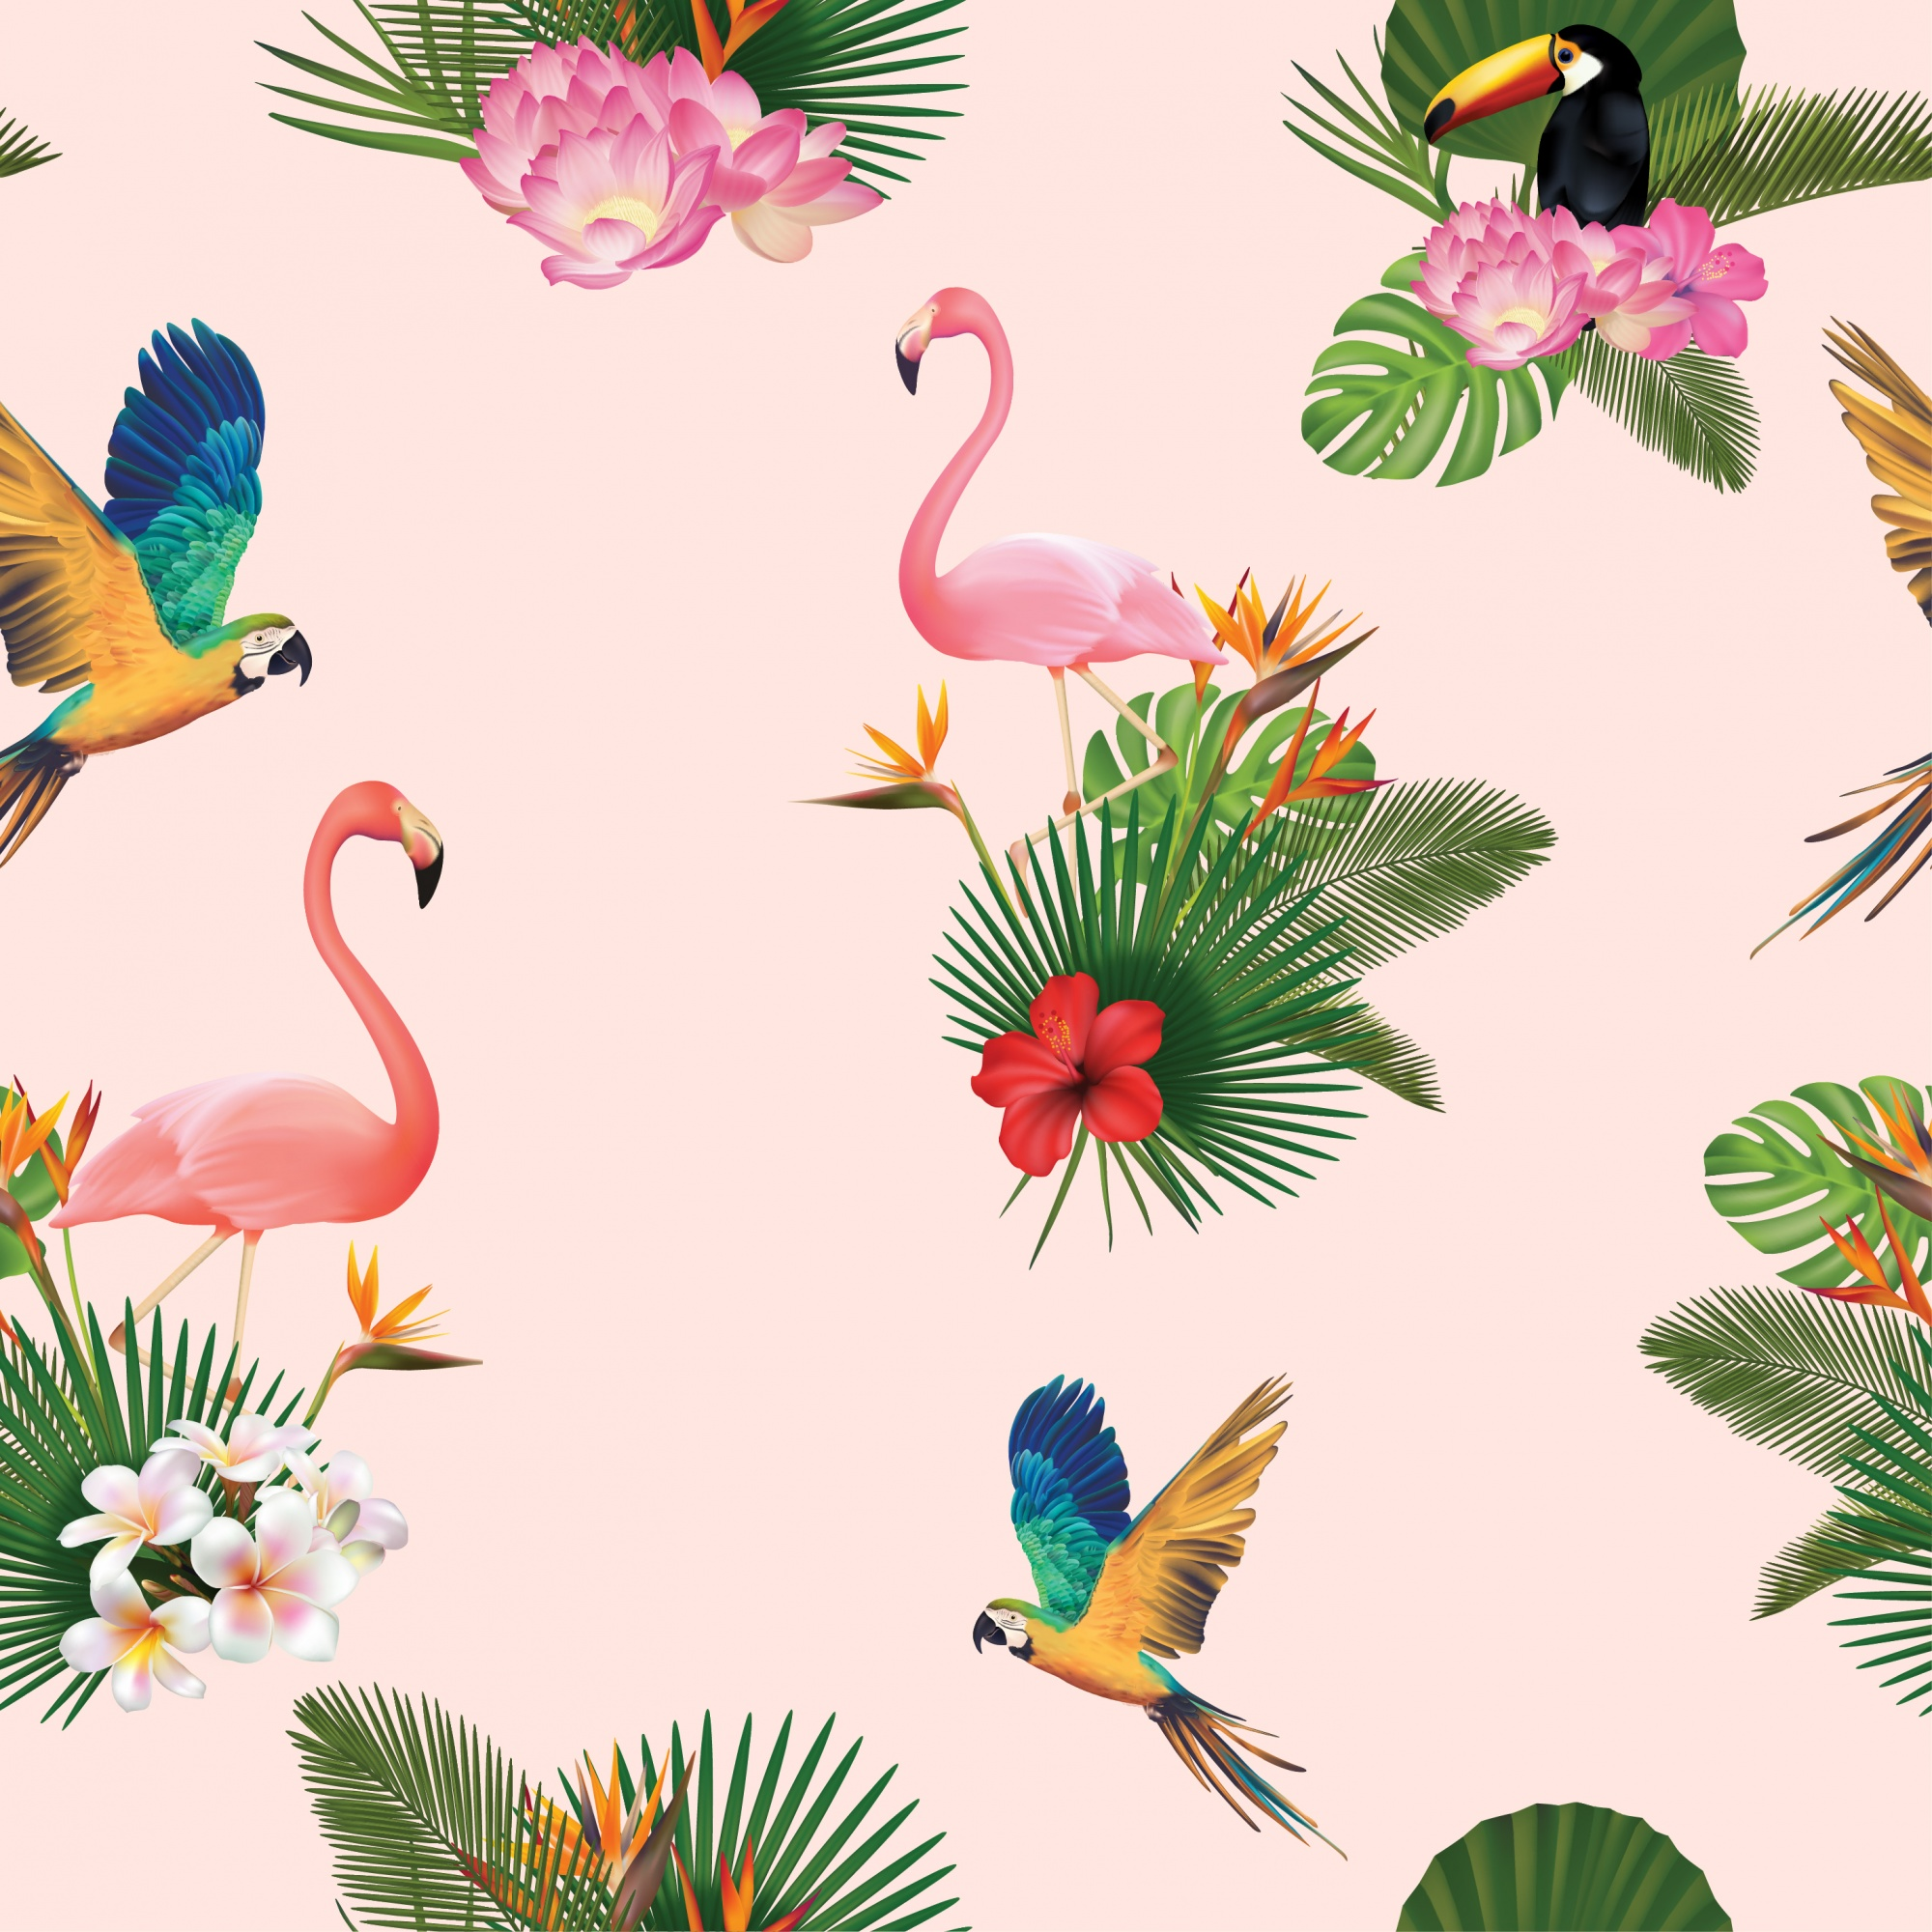 Birds and palm tree leaves pattern background